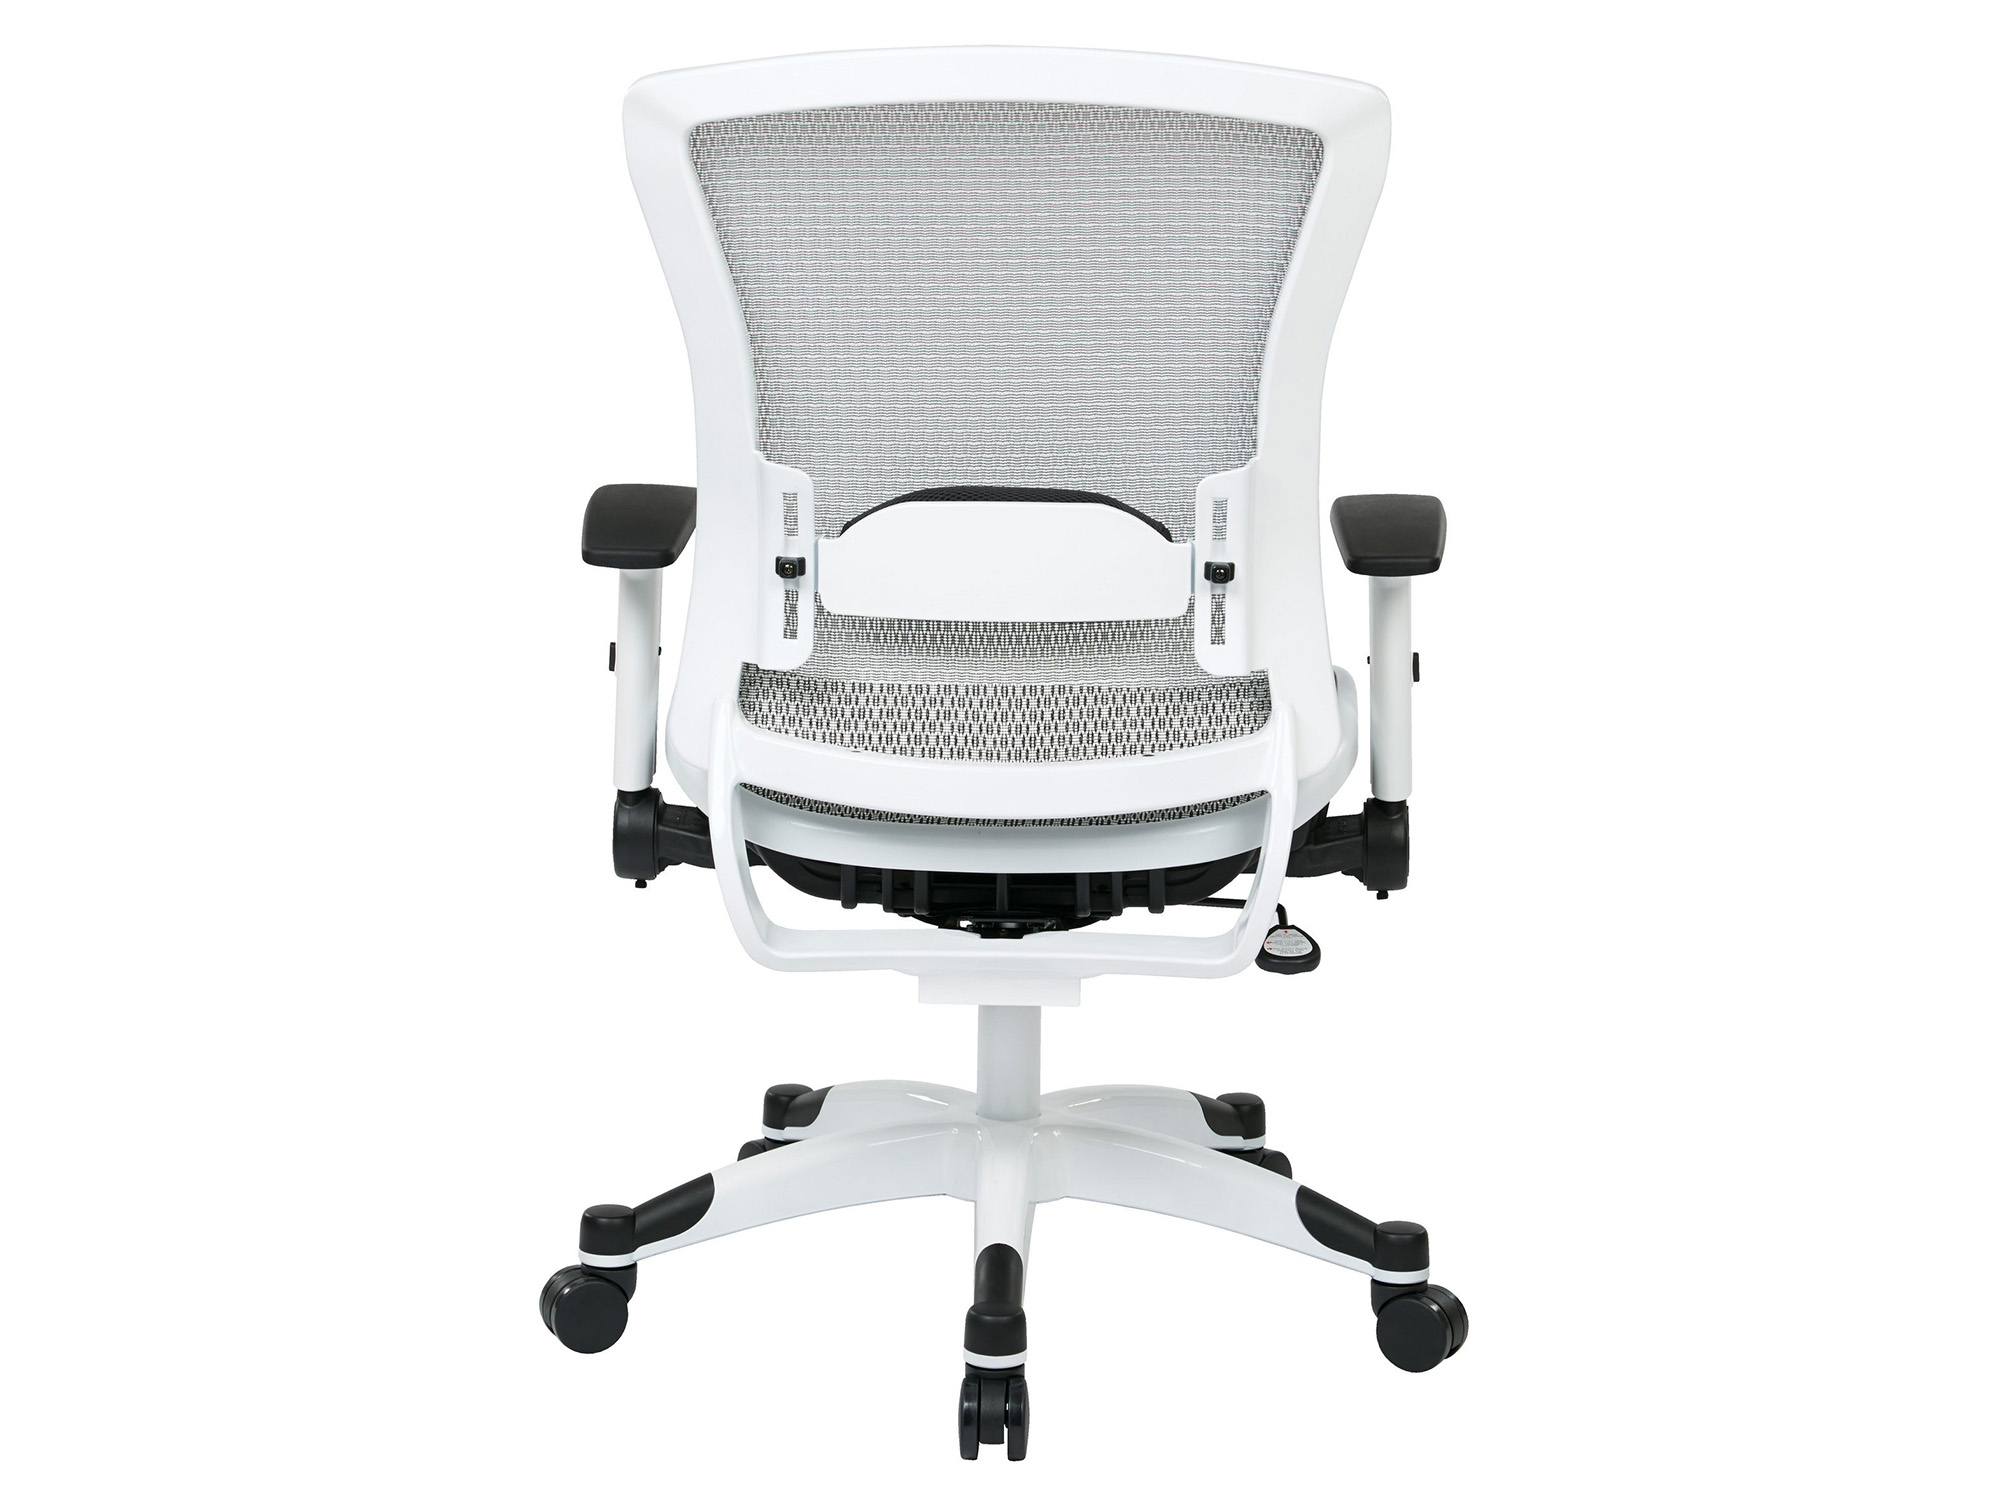 Office Star Chairs ergonomic seating - office task chairs - chairs for office